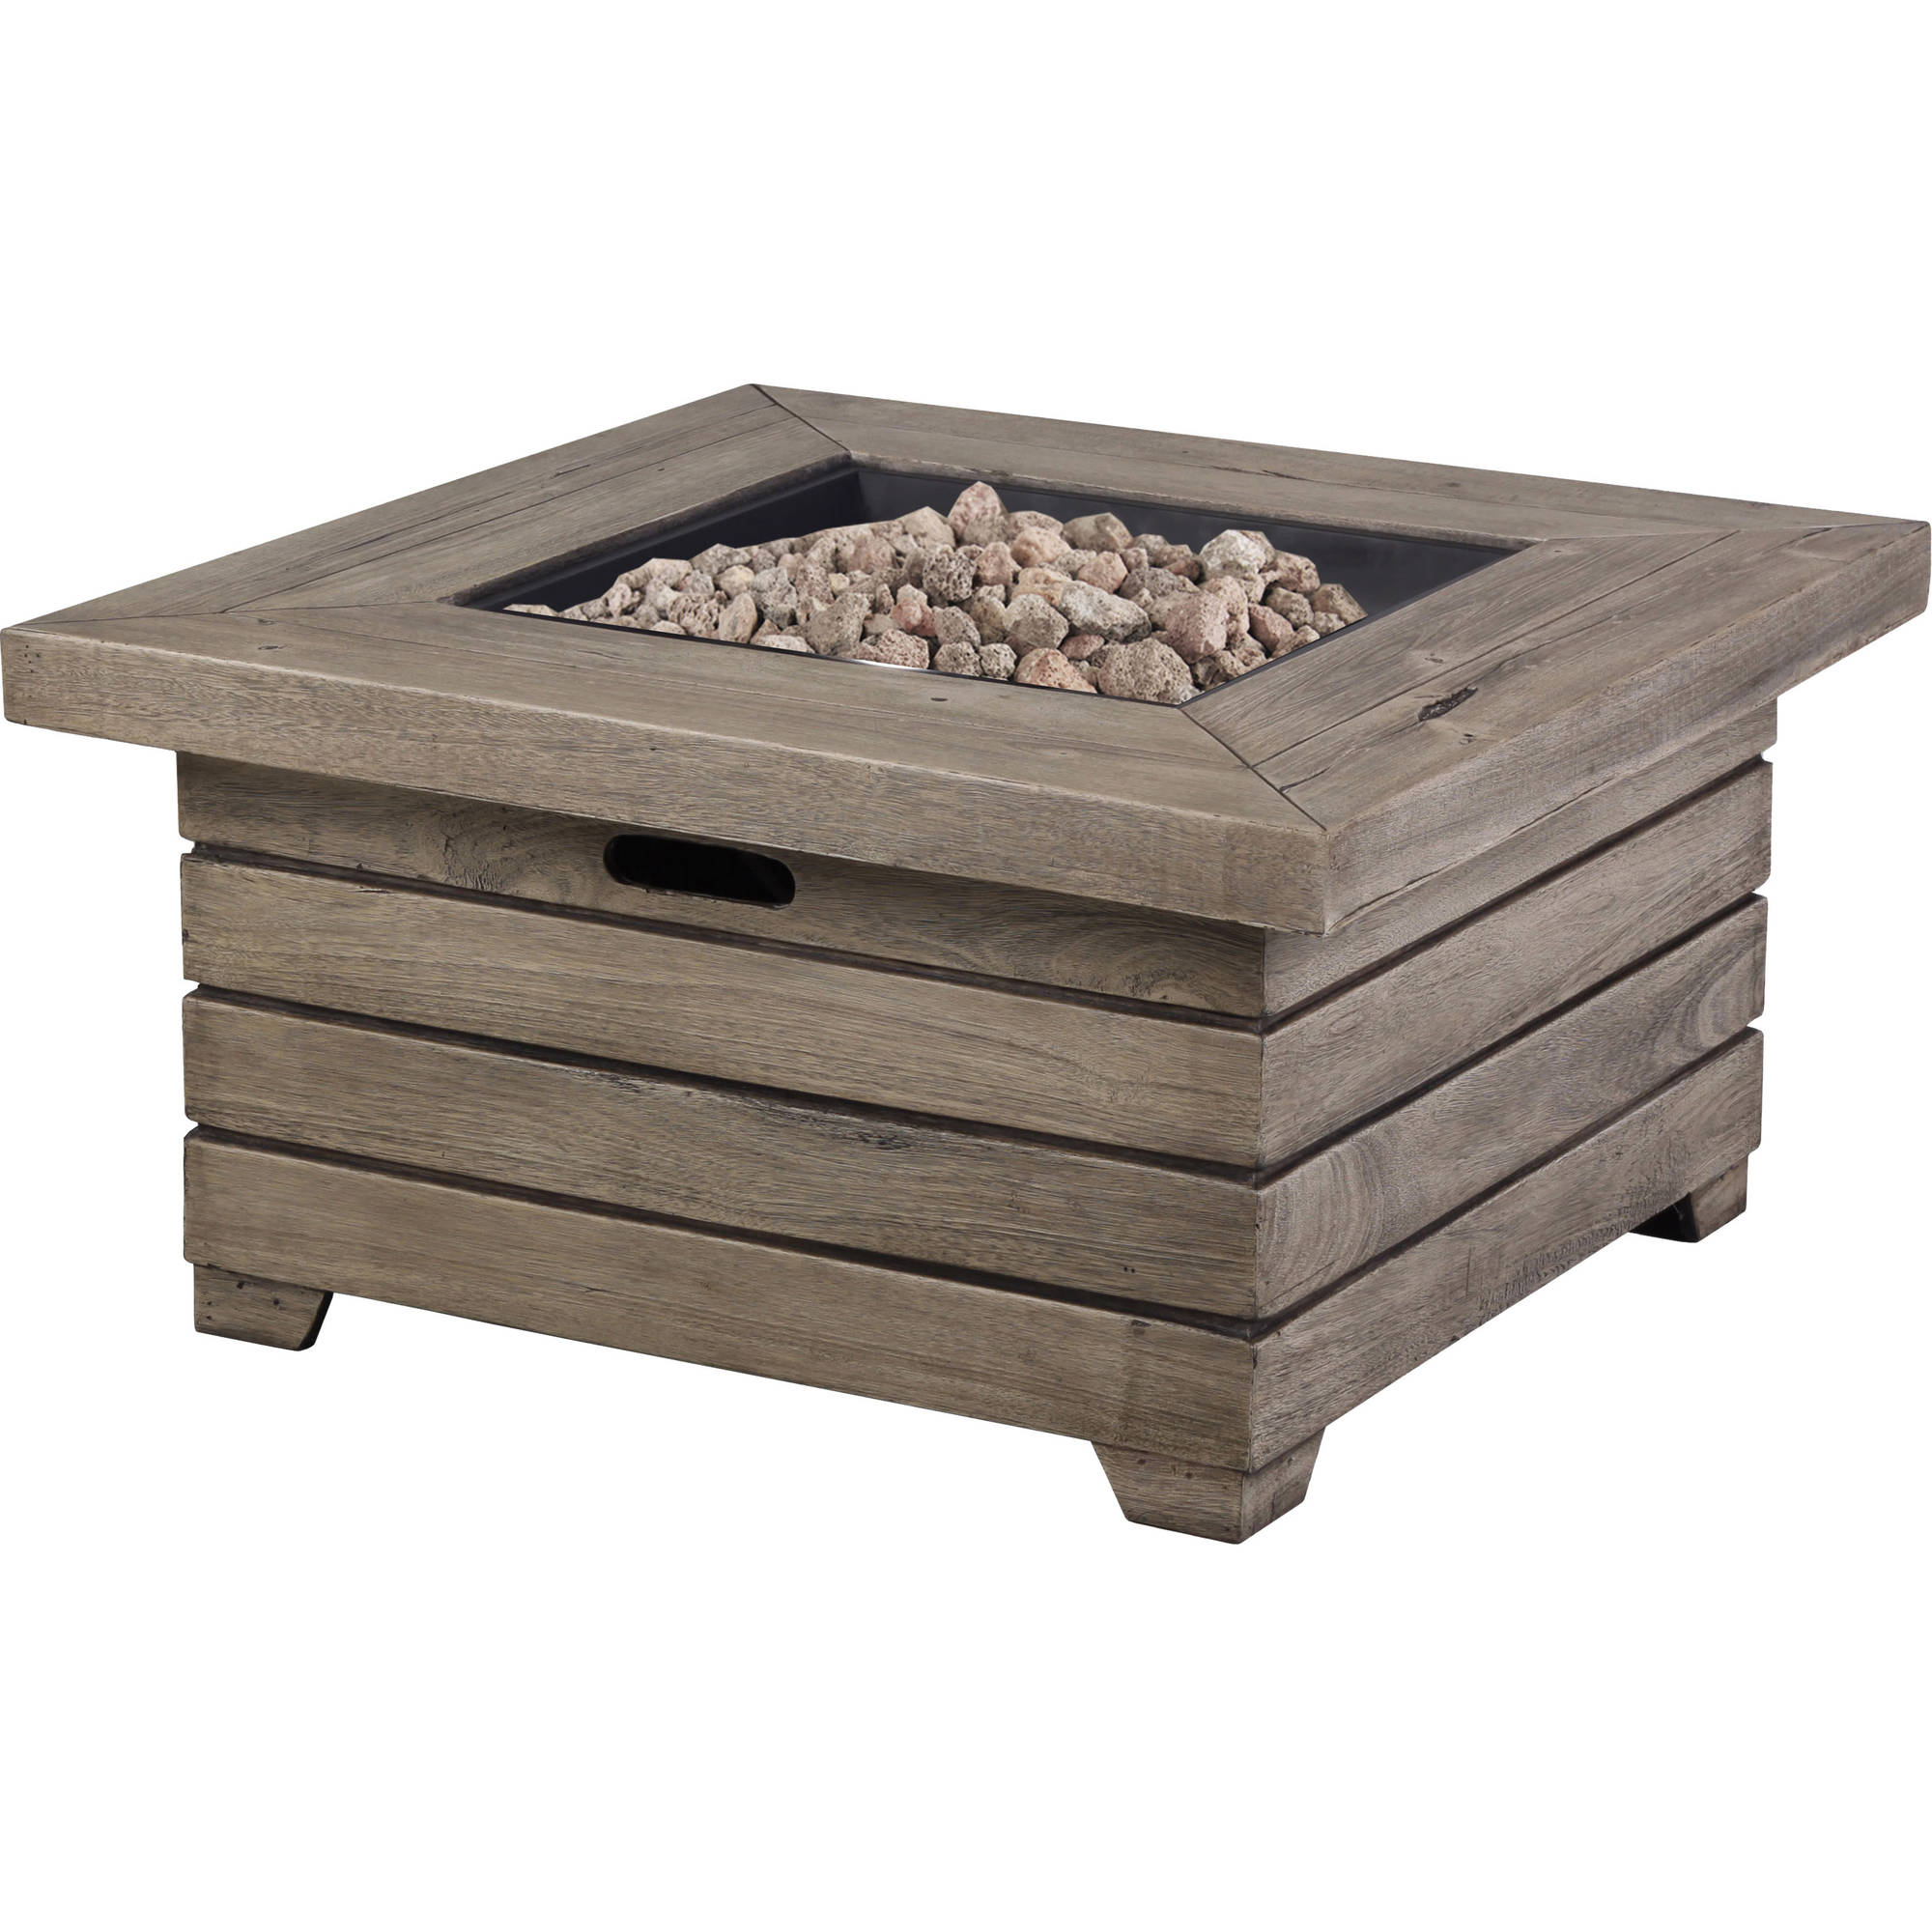 "Alondra Park 18"" Gas Fire Table"